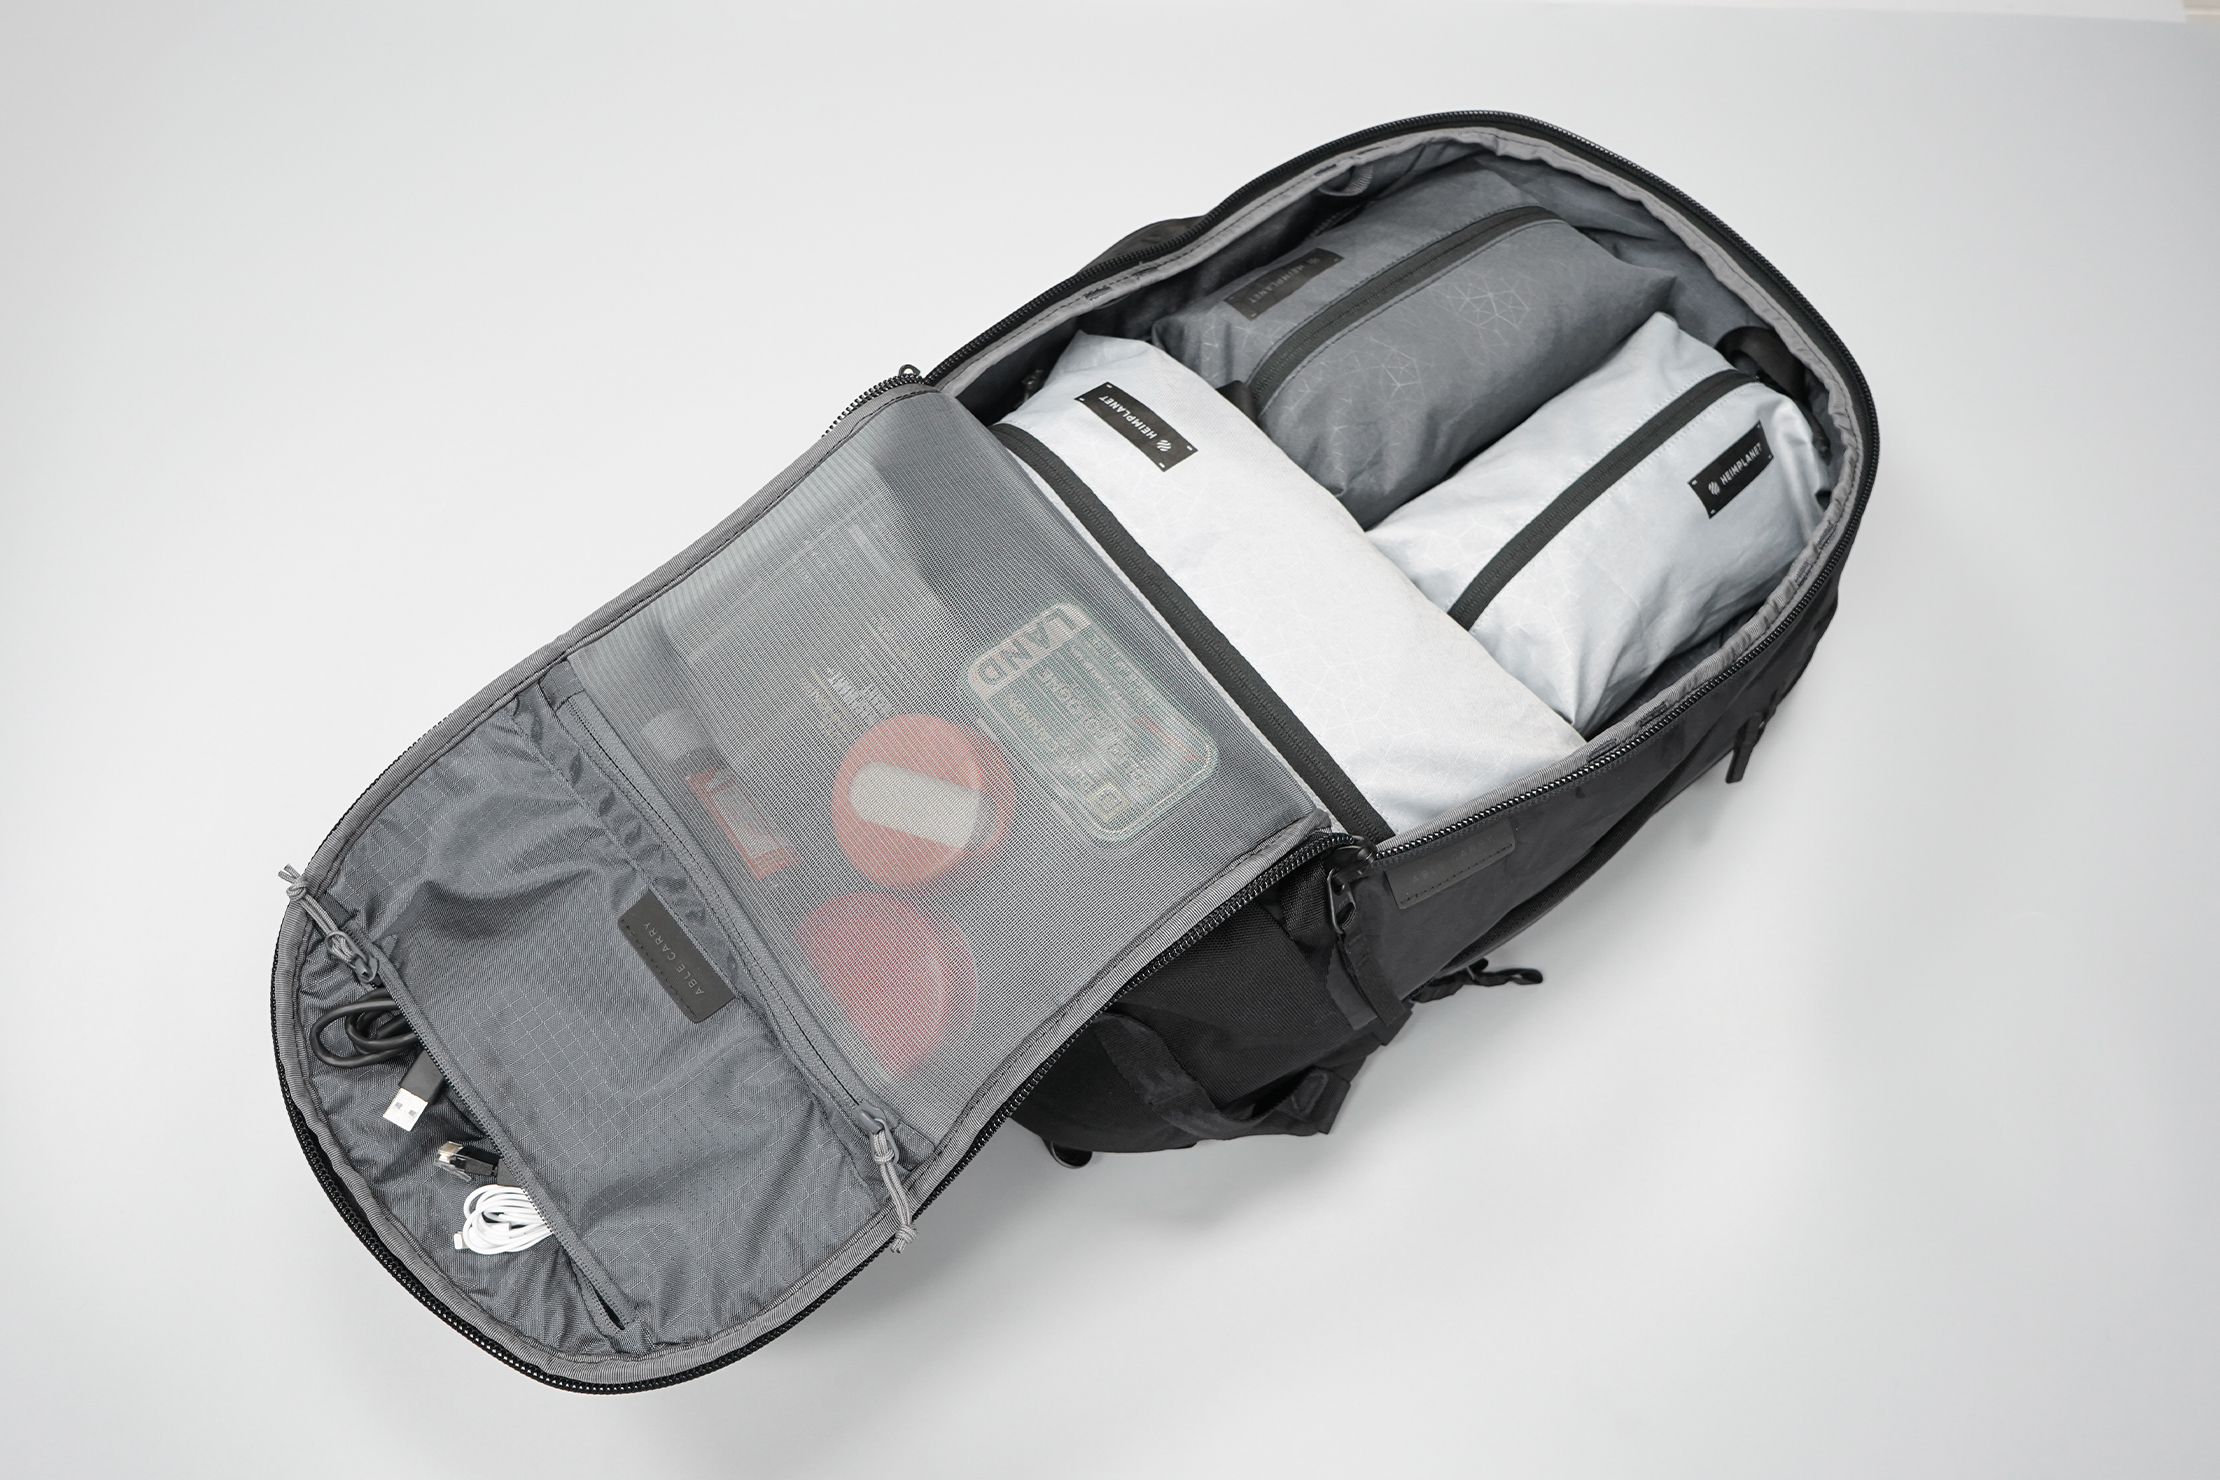 Able Carry Max Backpack | The main compartment opens up clamshell-style